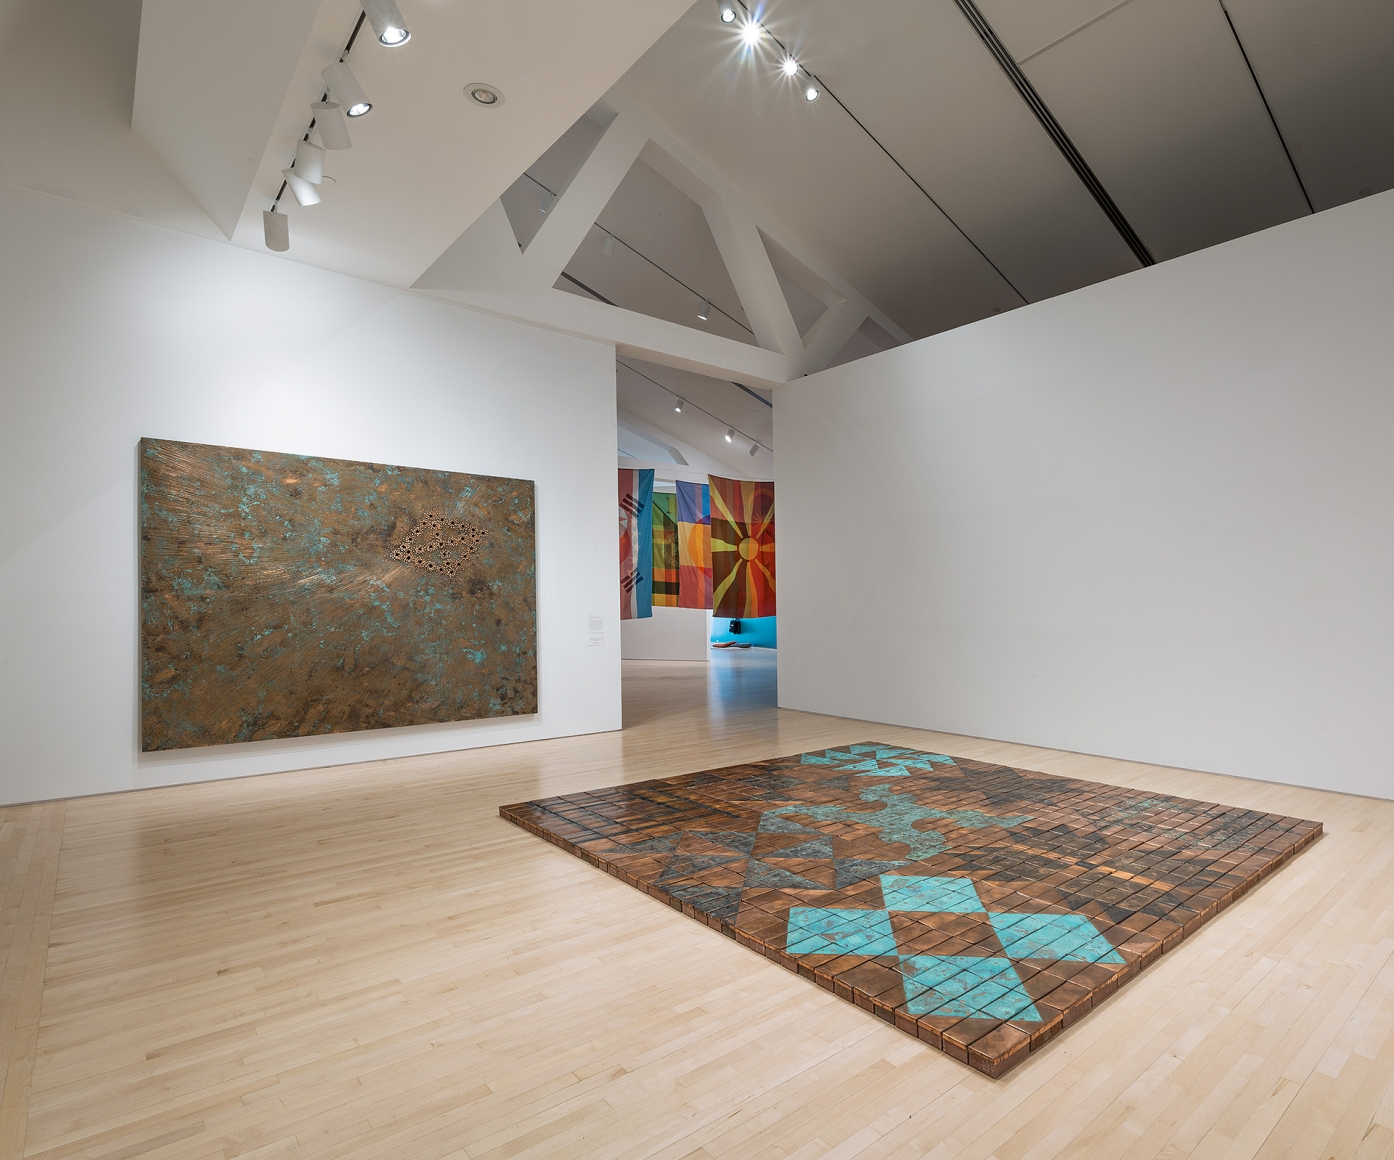 Installation view Worlds Otherwise Hidden,Kemper Museum of Contemporary Art, Worlds Otherwise Hidden, May 17-September 2, 2018.